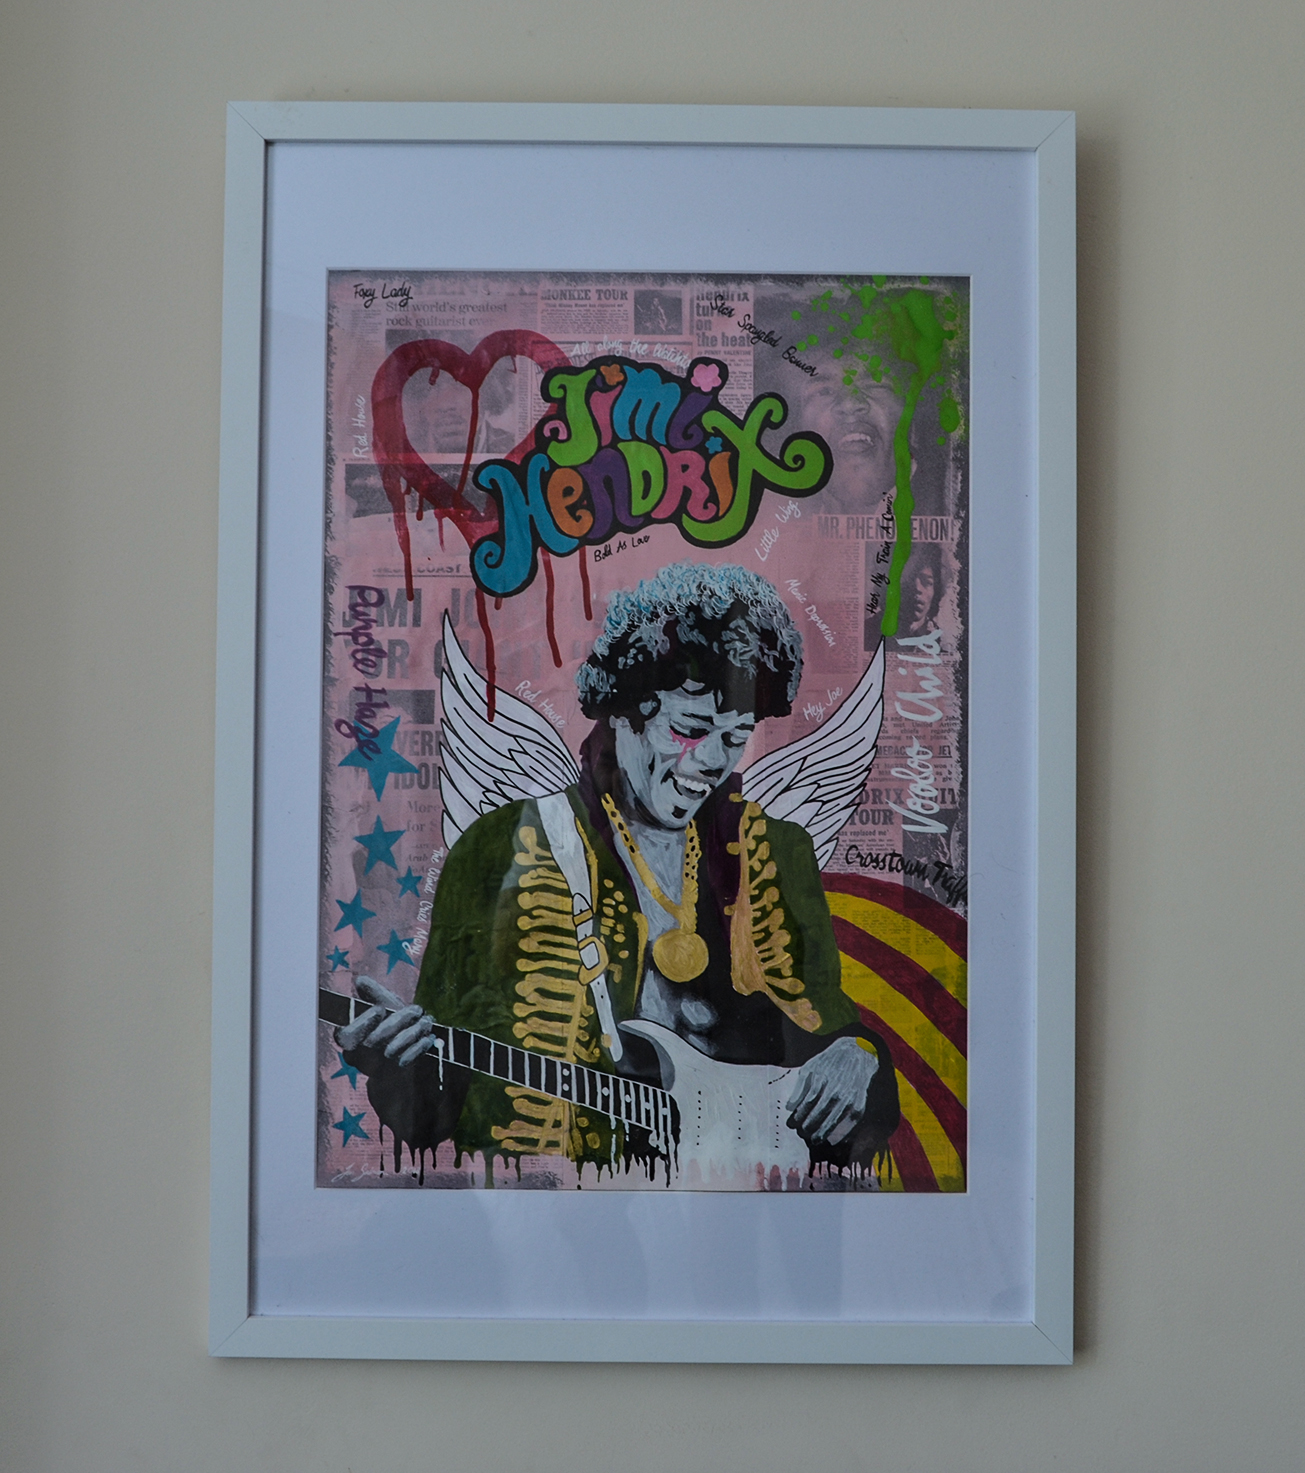 Jim Hendrix Pop Art painting Ian Salmon Art 2.jpg